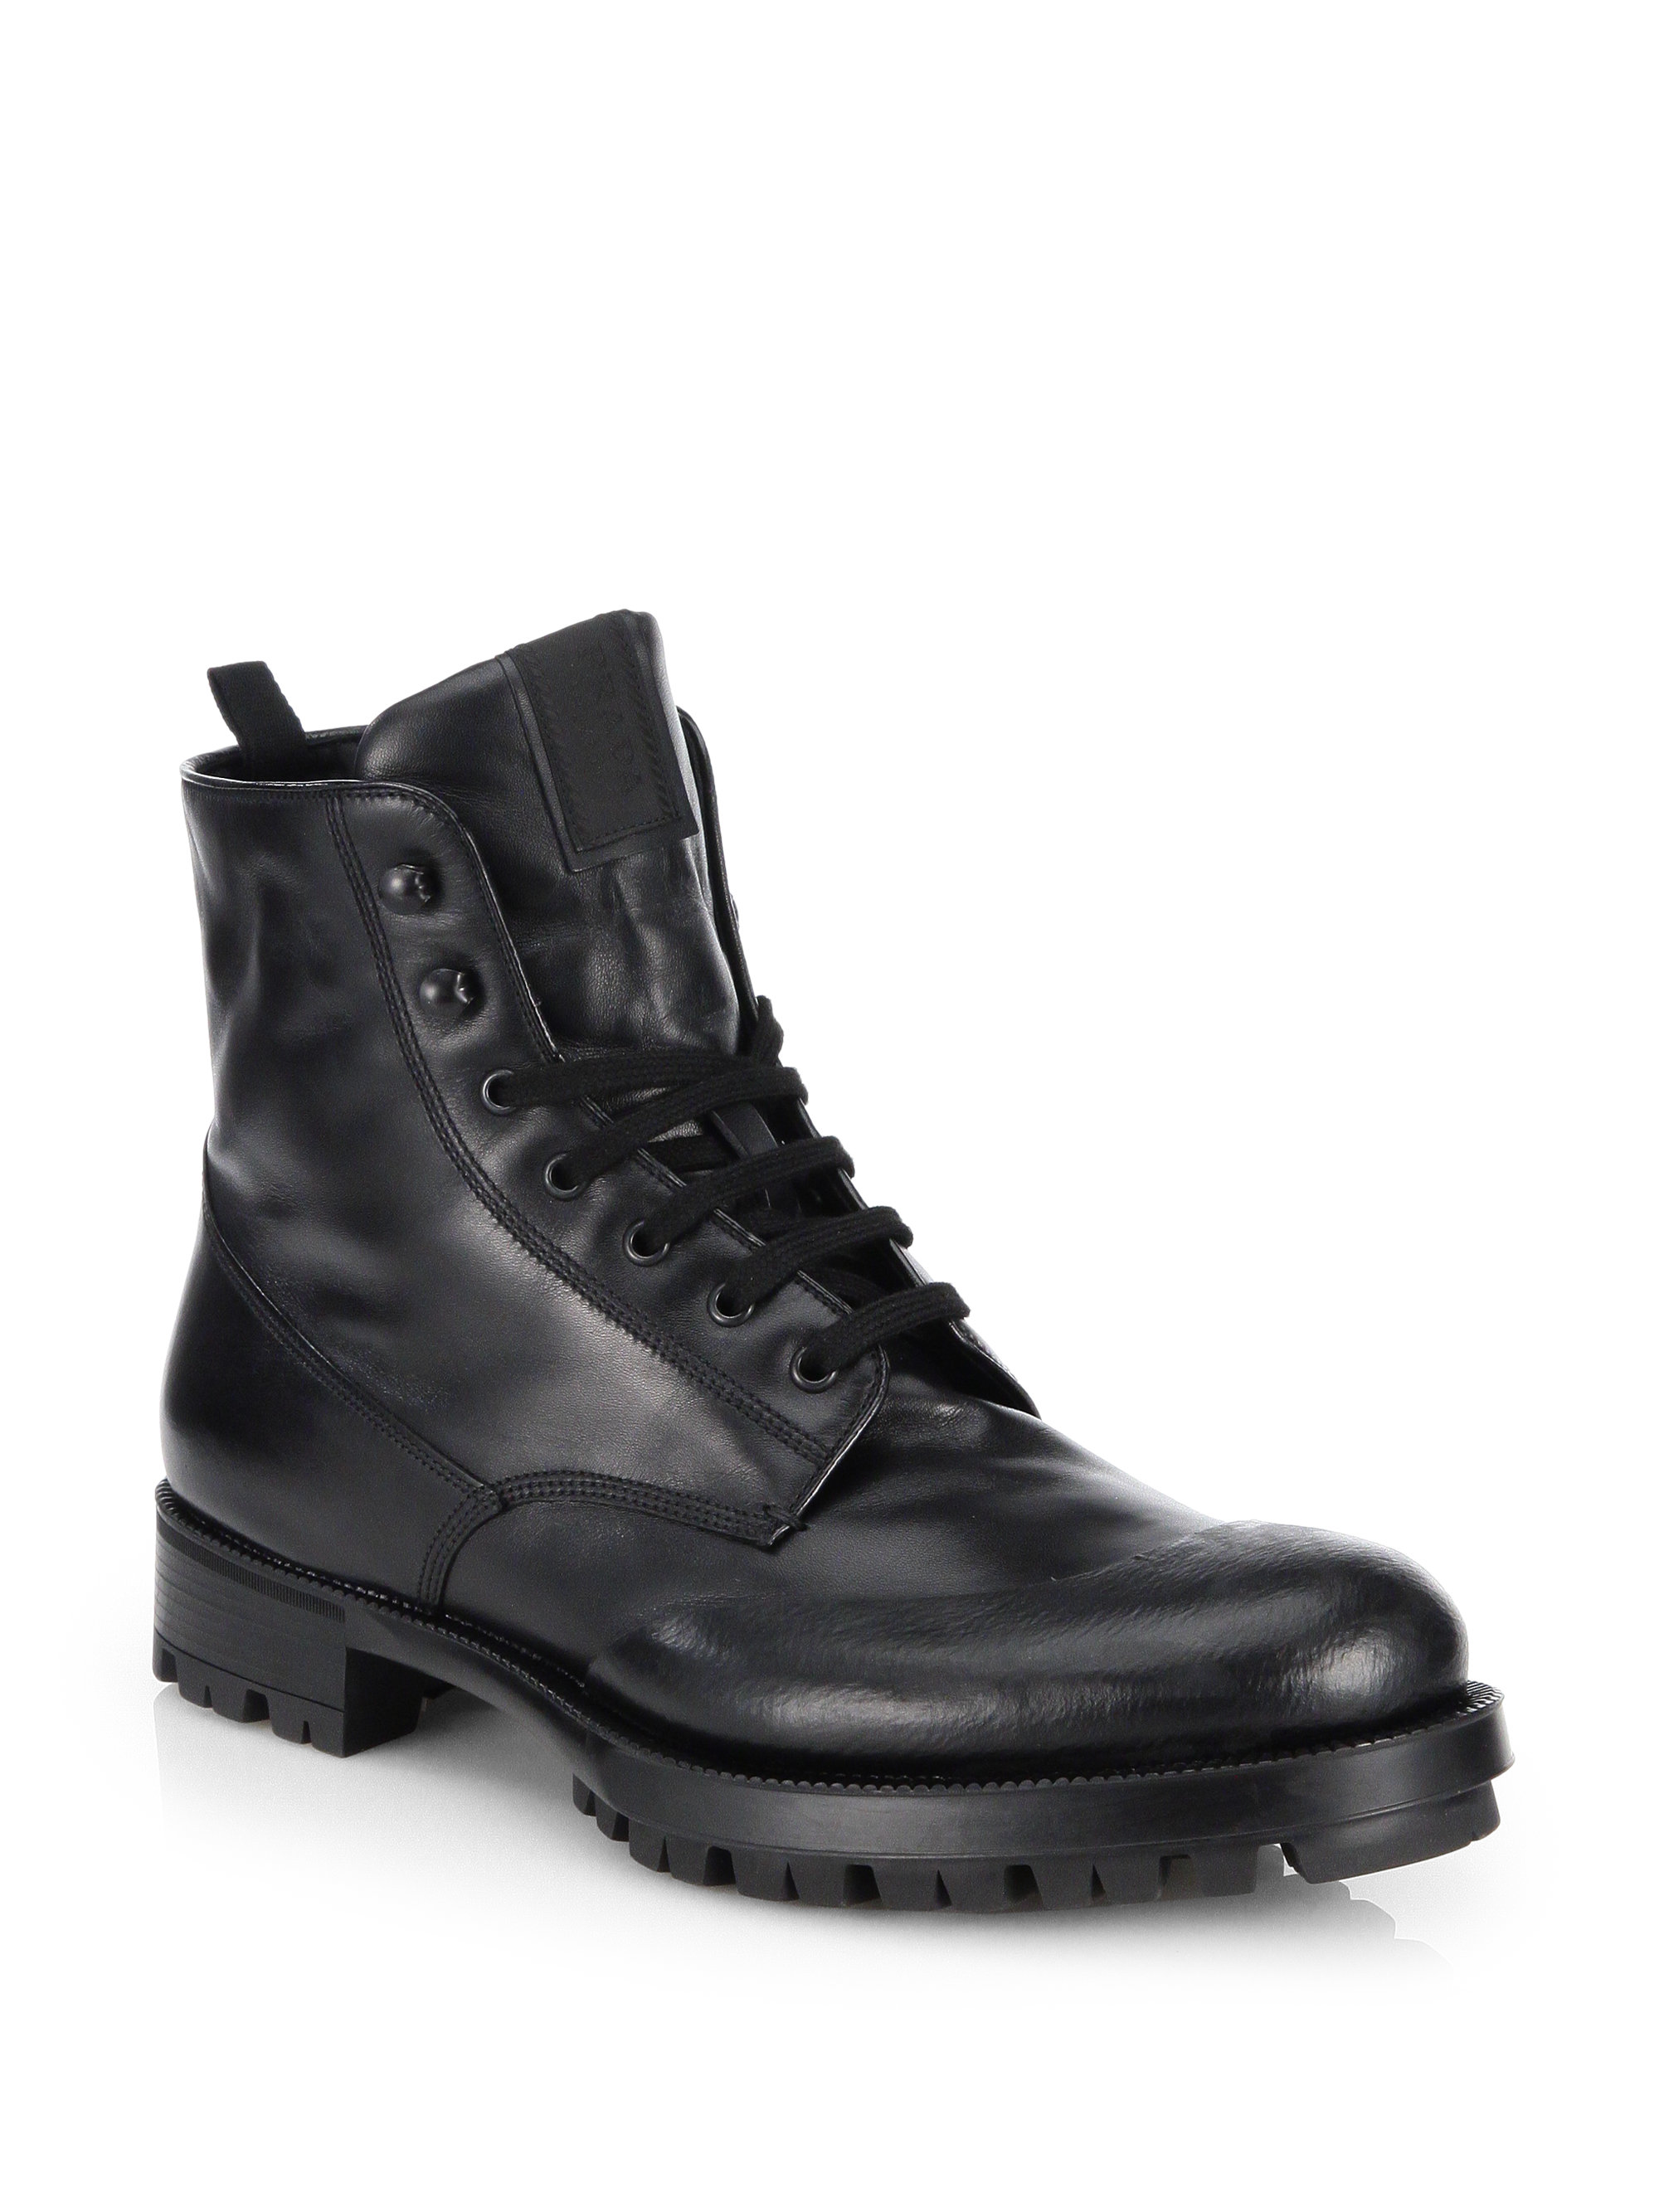 Prada Laceup Leather Combat Boots In Black For Men Lyst